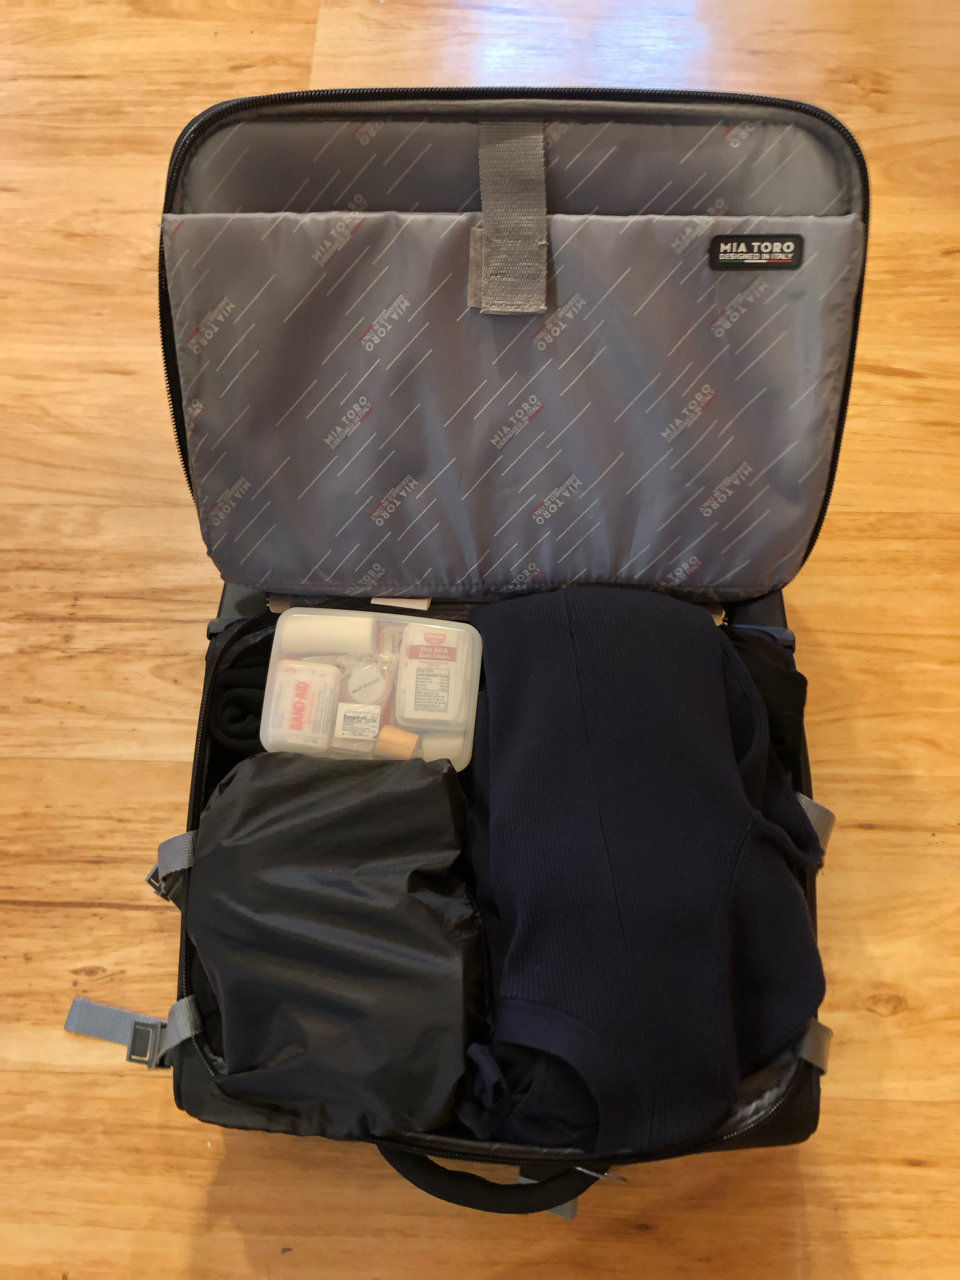 Packing Light small suitcase packed efficiently